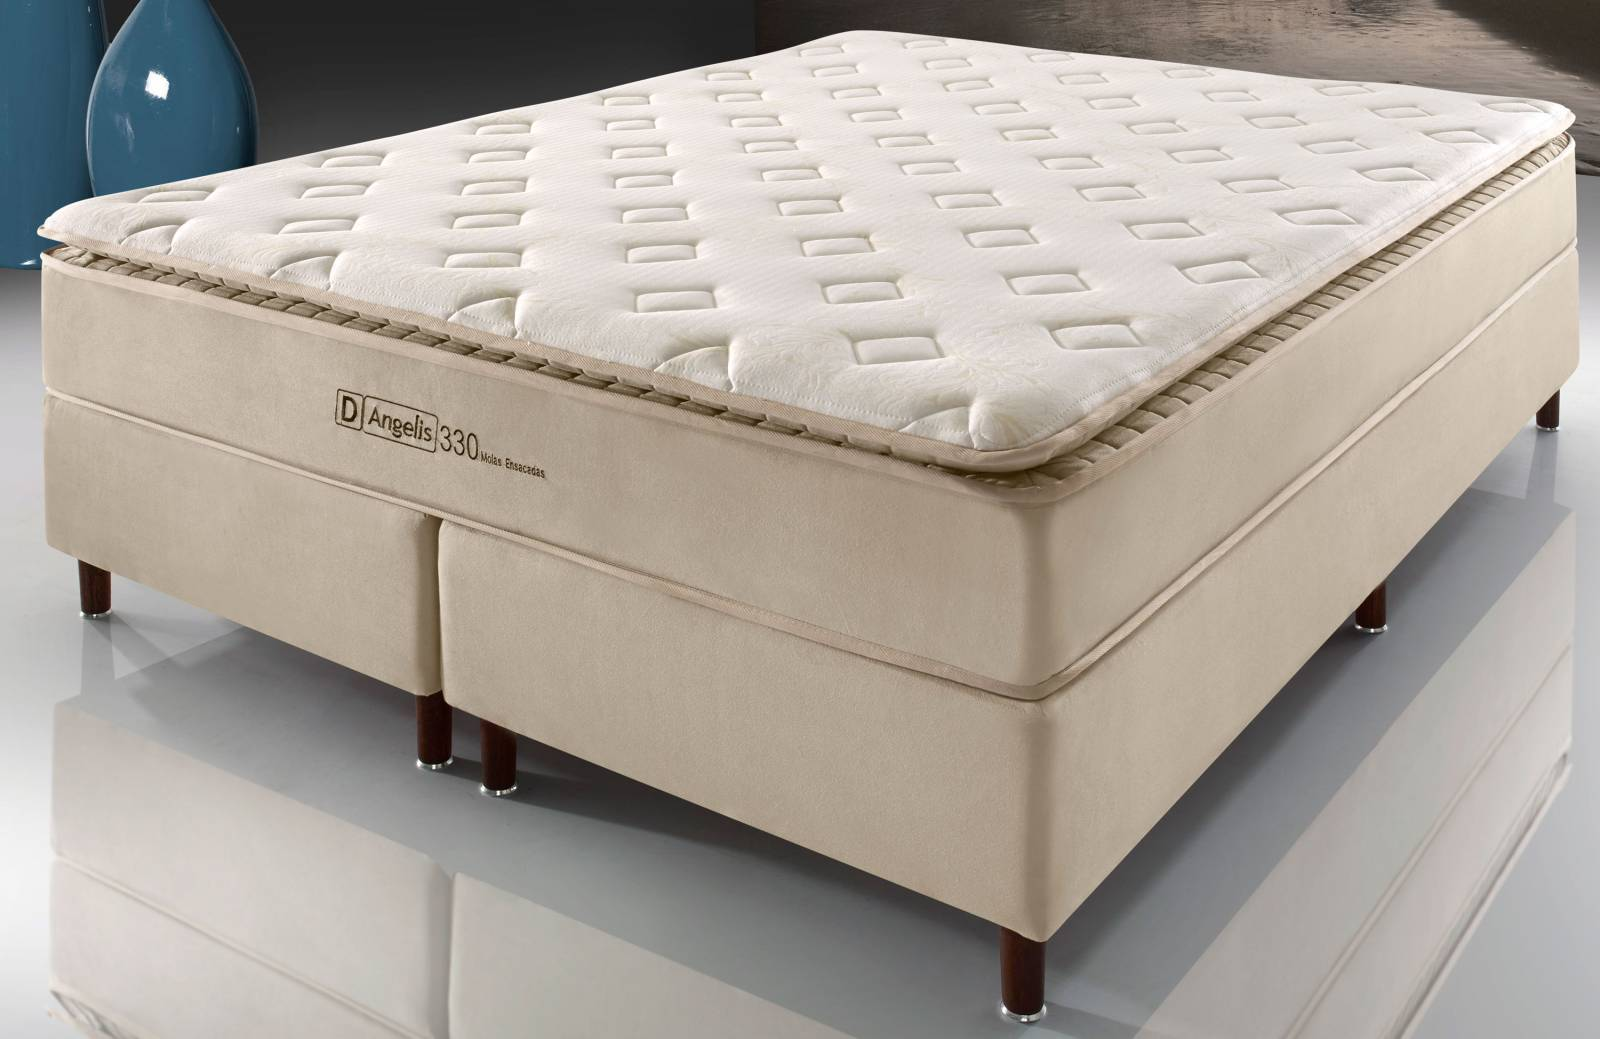 Conjunto Cama Box DG 330 Visco Gel D'Angelis - All Home